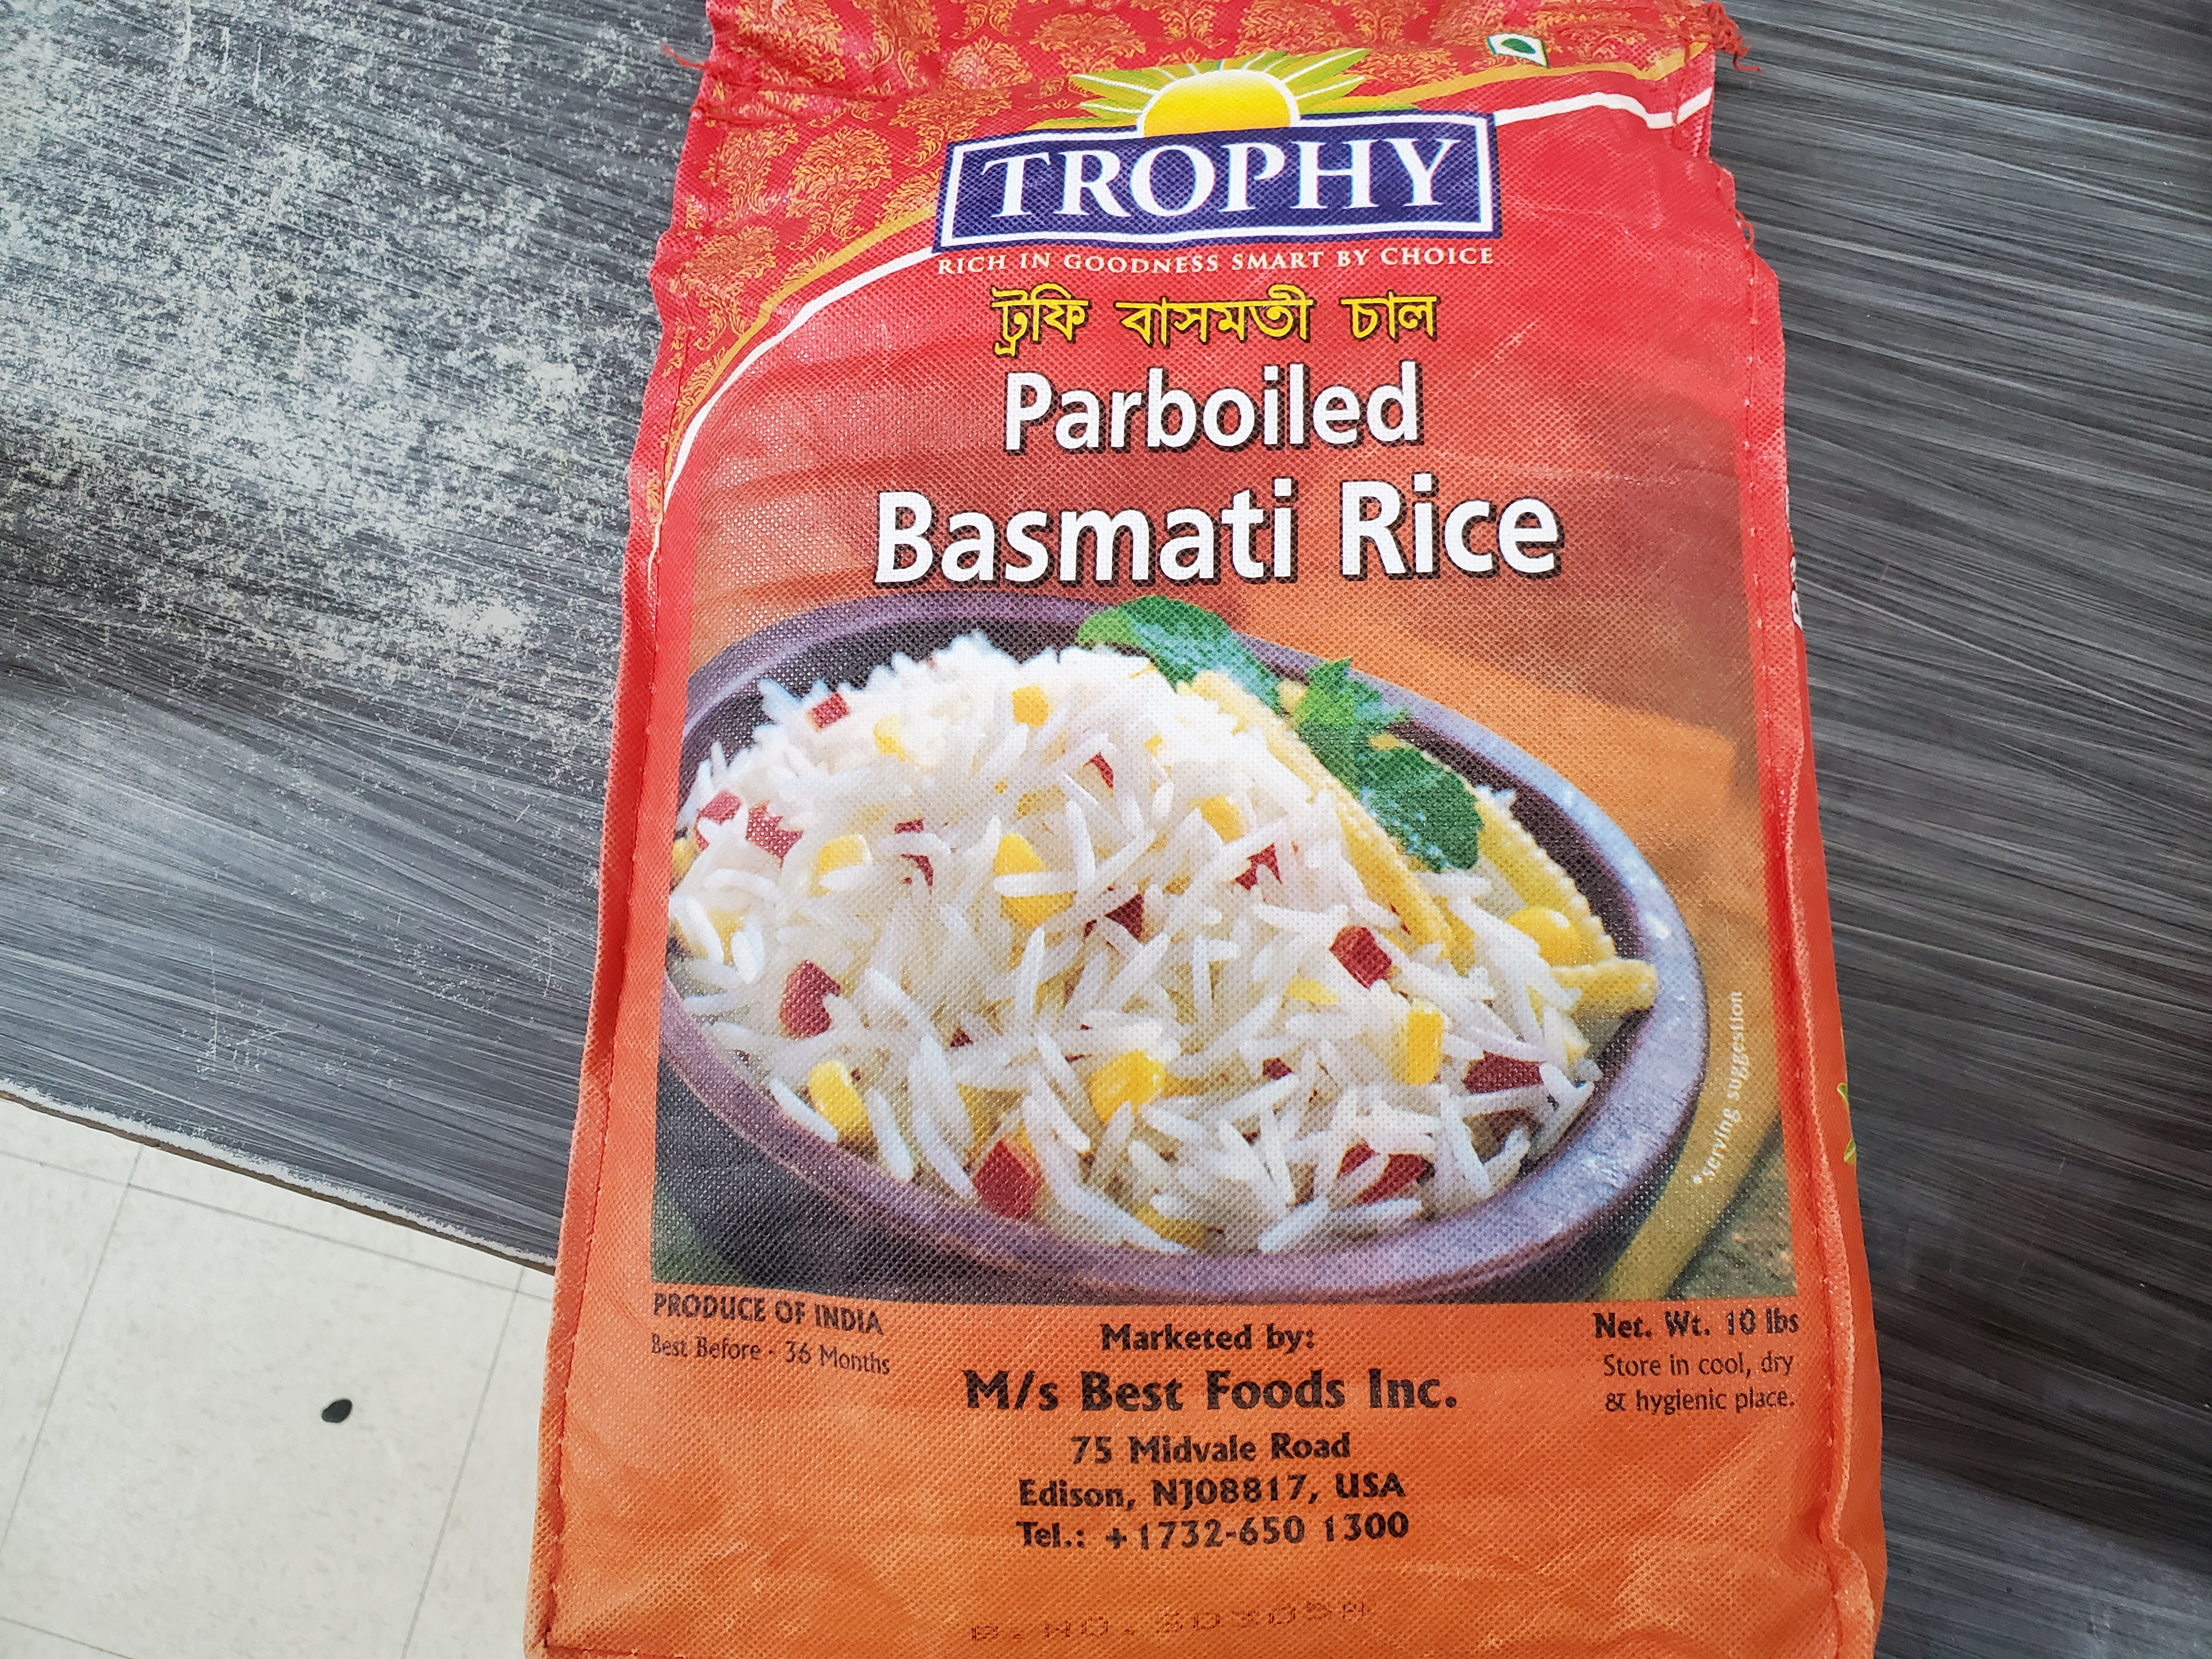 TROPHY PARBOILED BASMATI RICE 10LBS